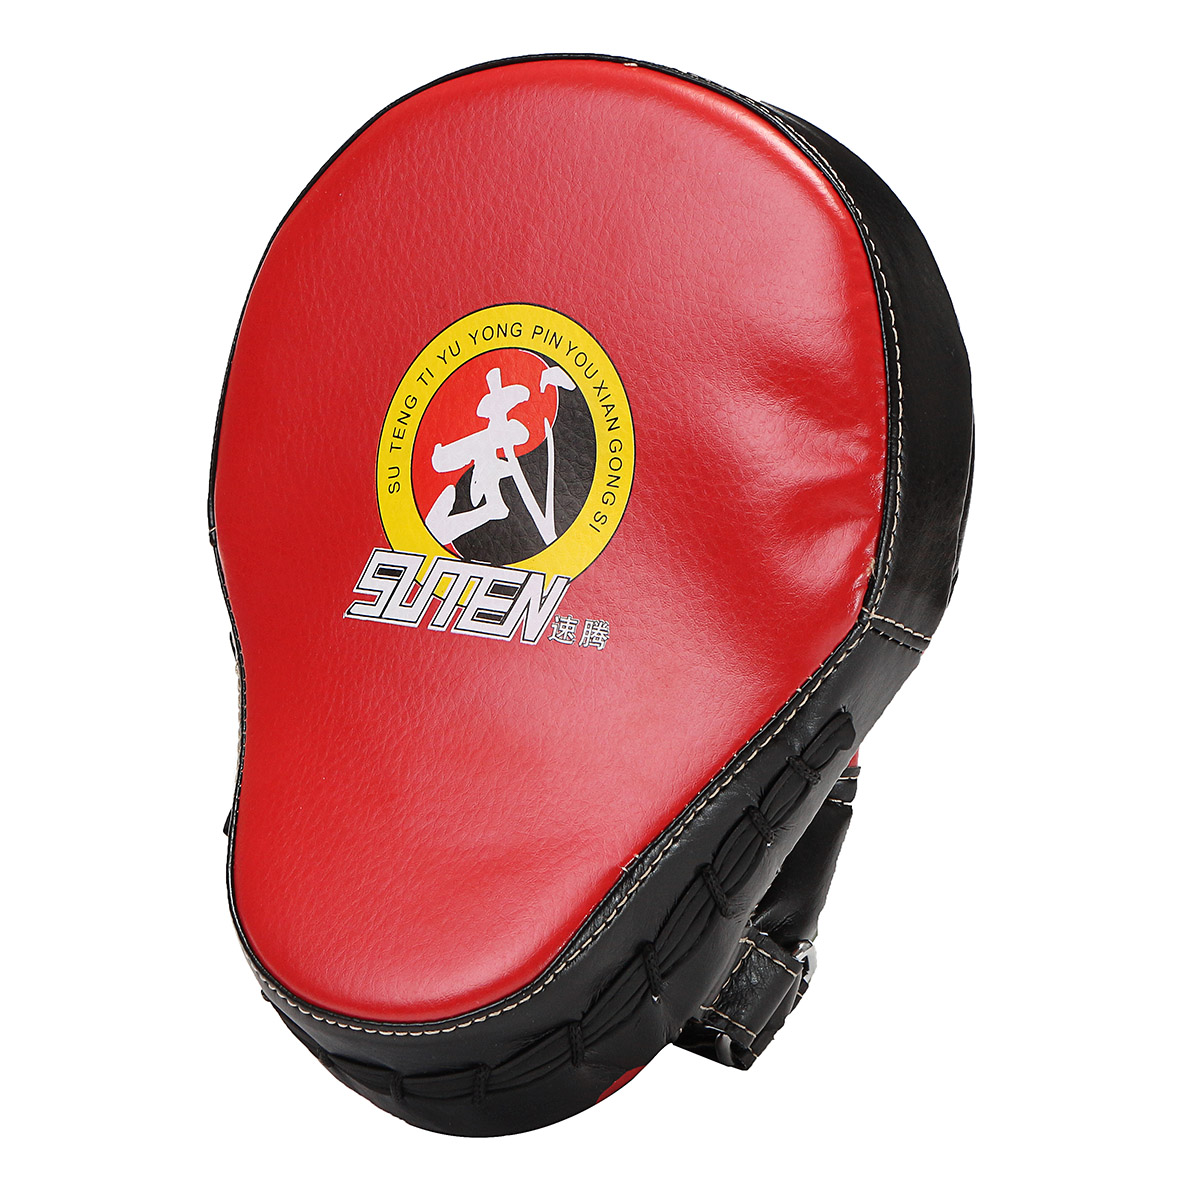 PU Leather MMA Kick Strike Shield Thai Pad Target Focus Boxing Training Punching Mitts by